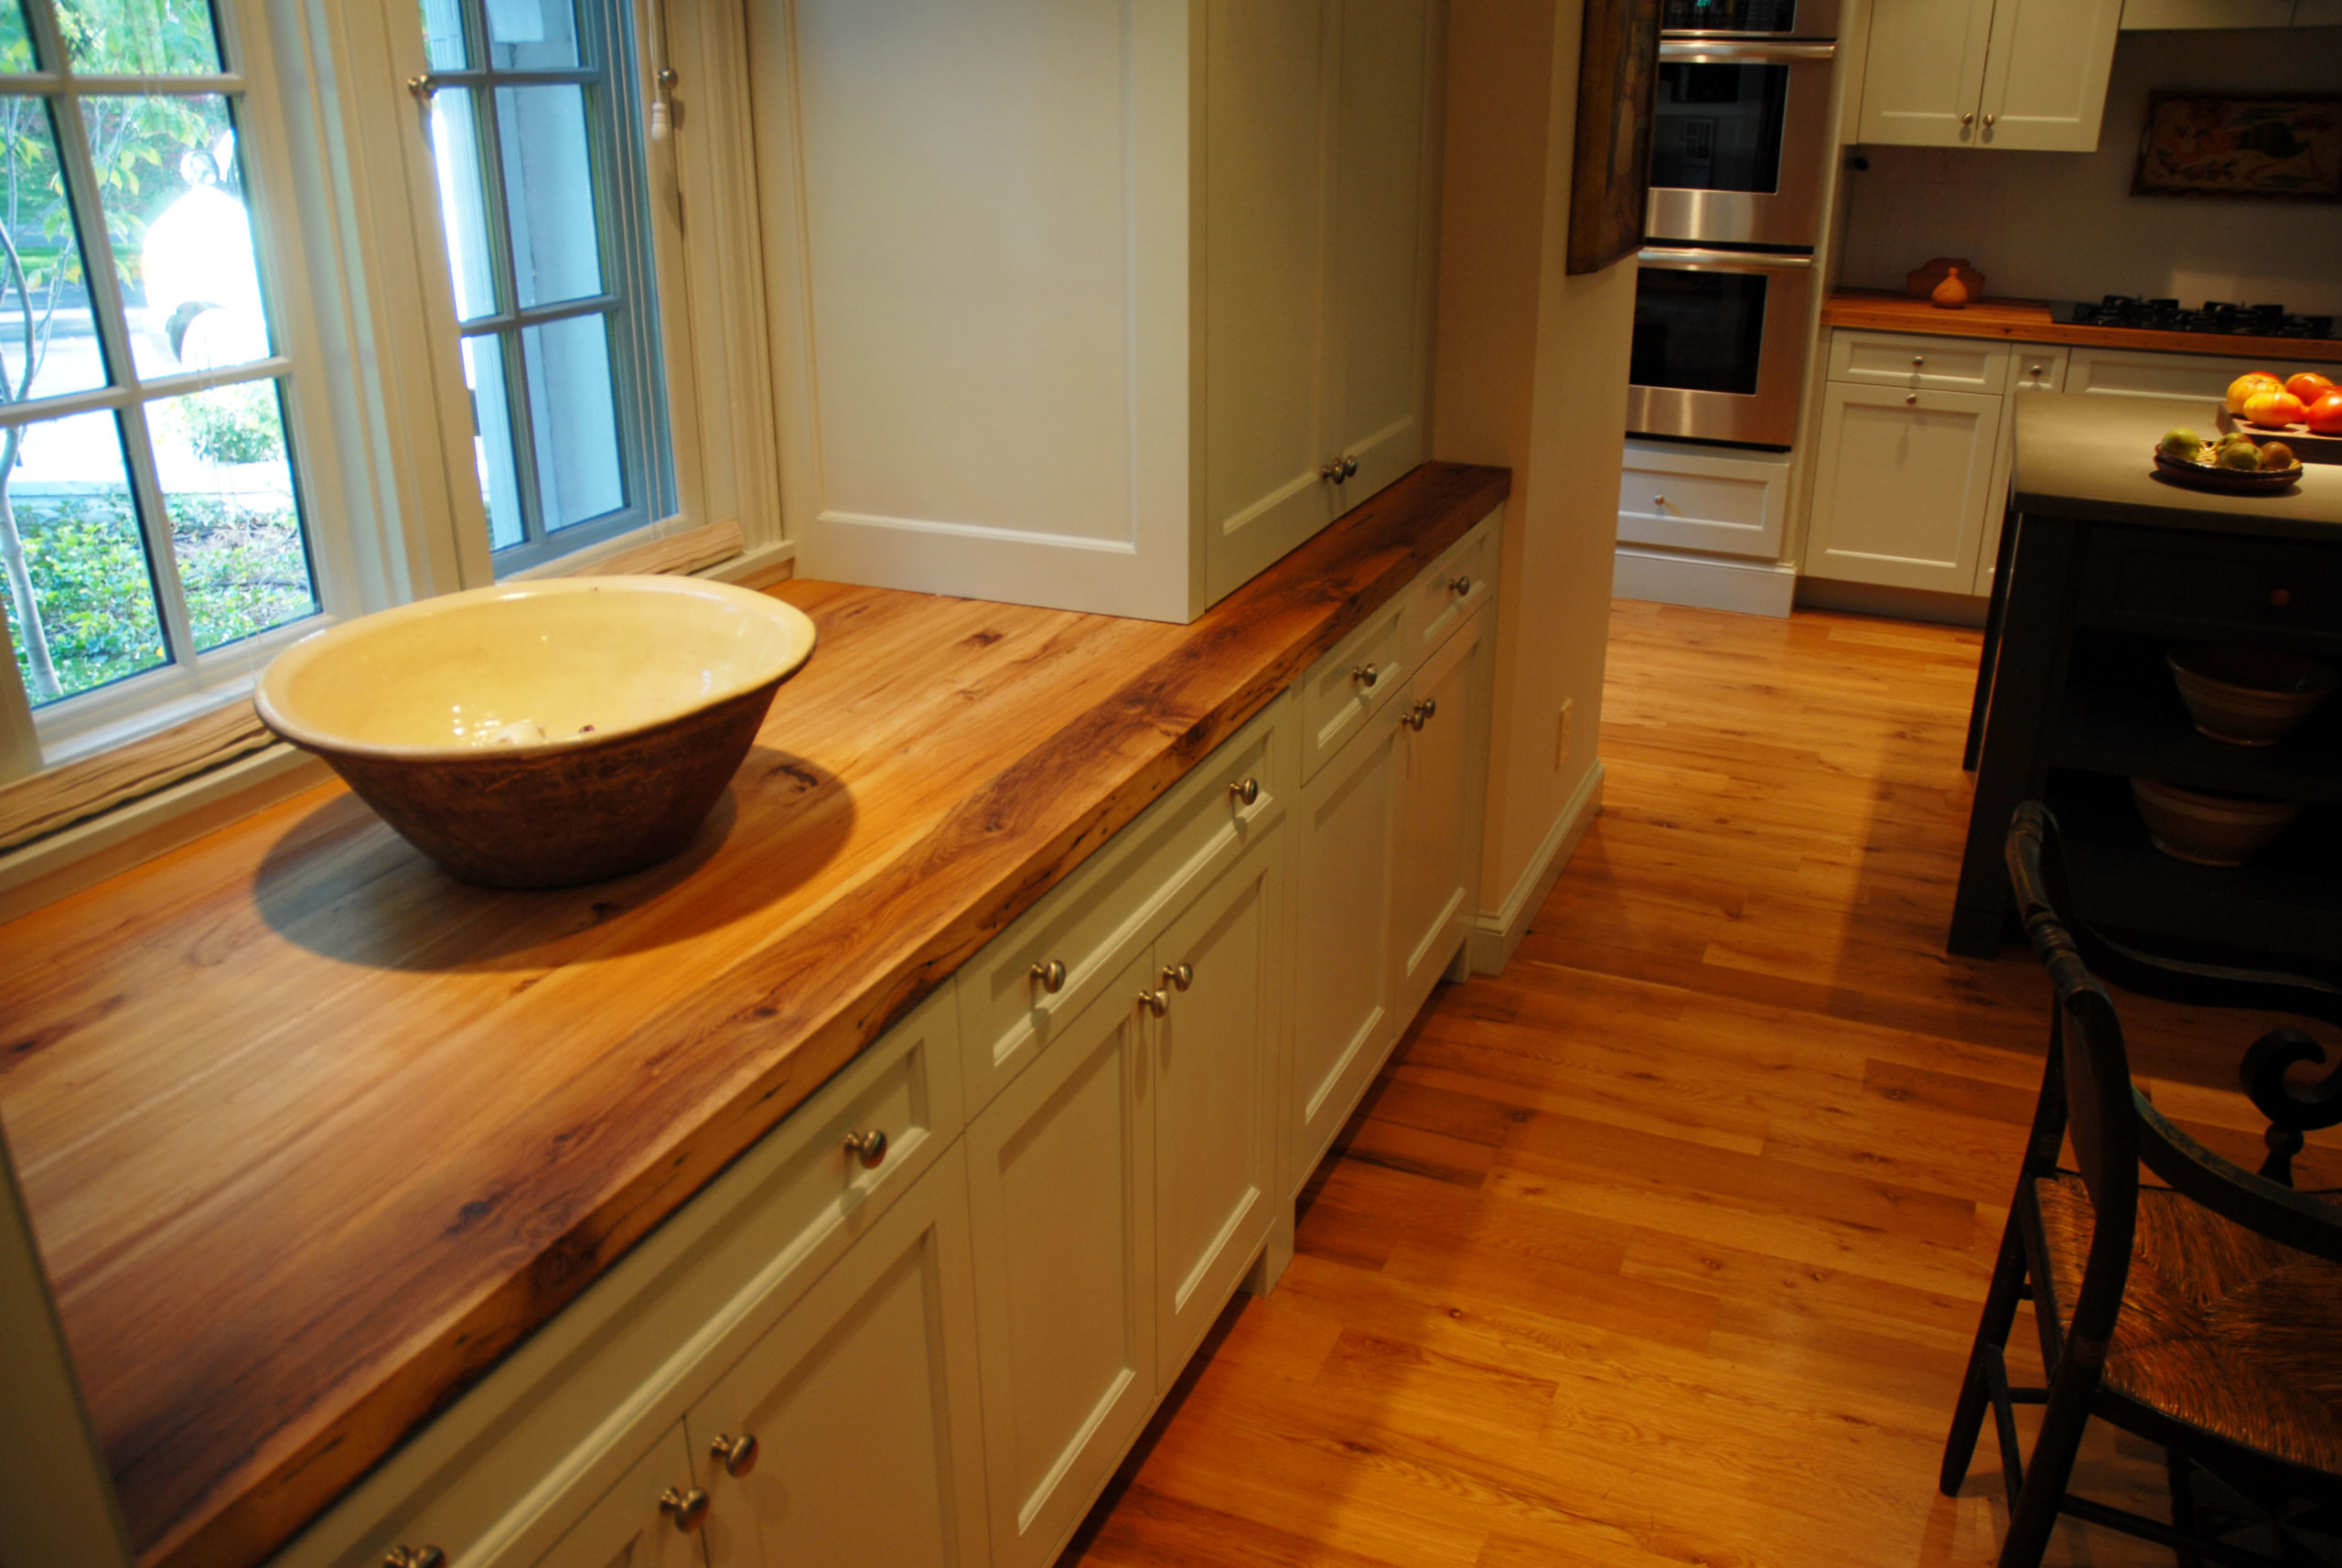 Antique White Oak-Select Floors and Hickory Countertops